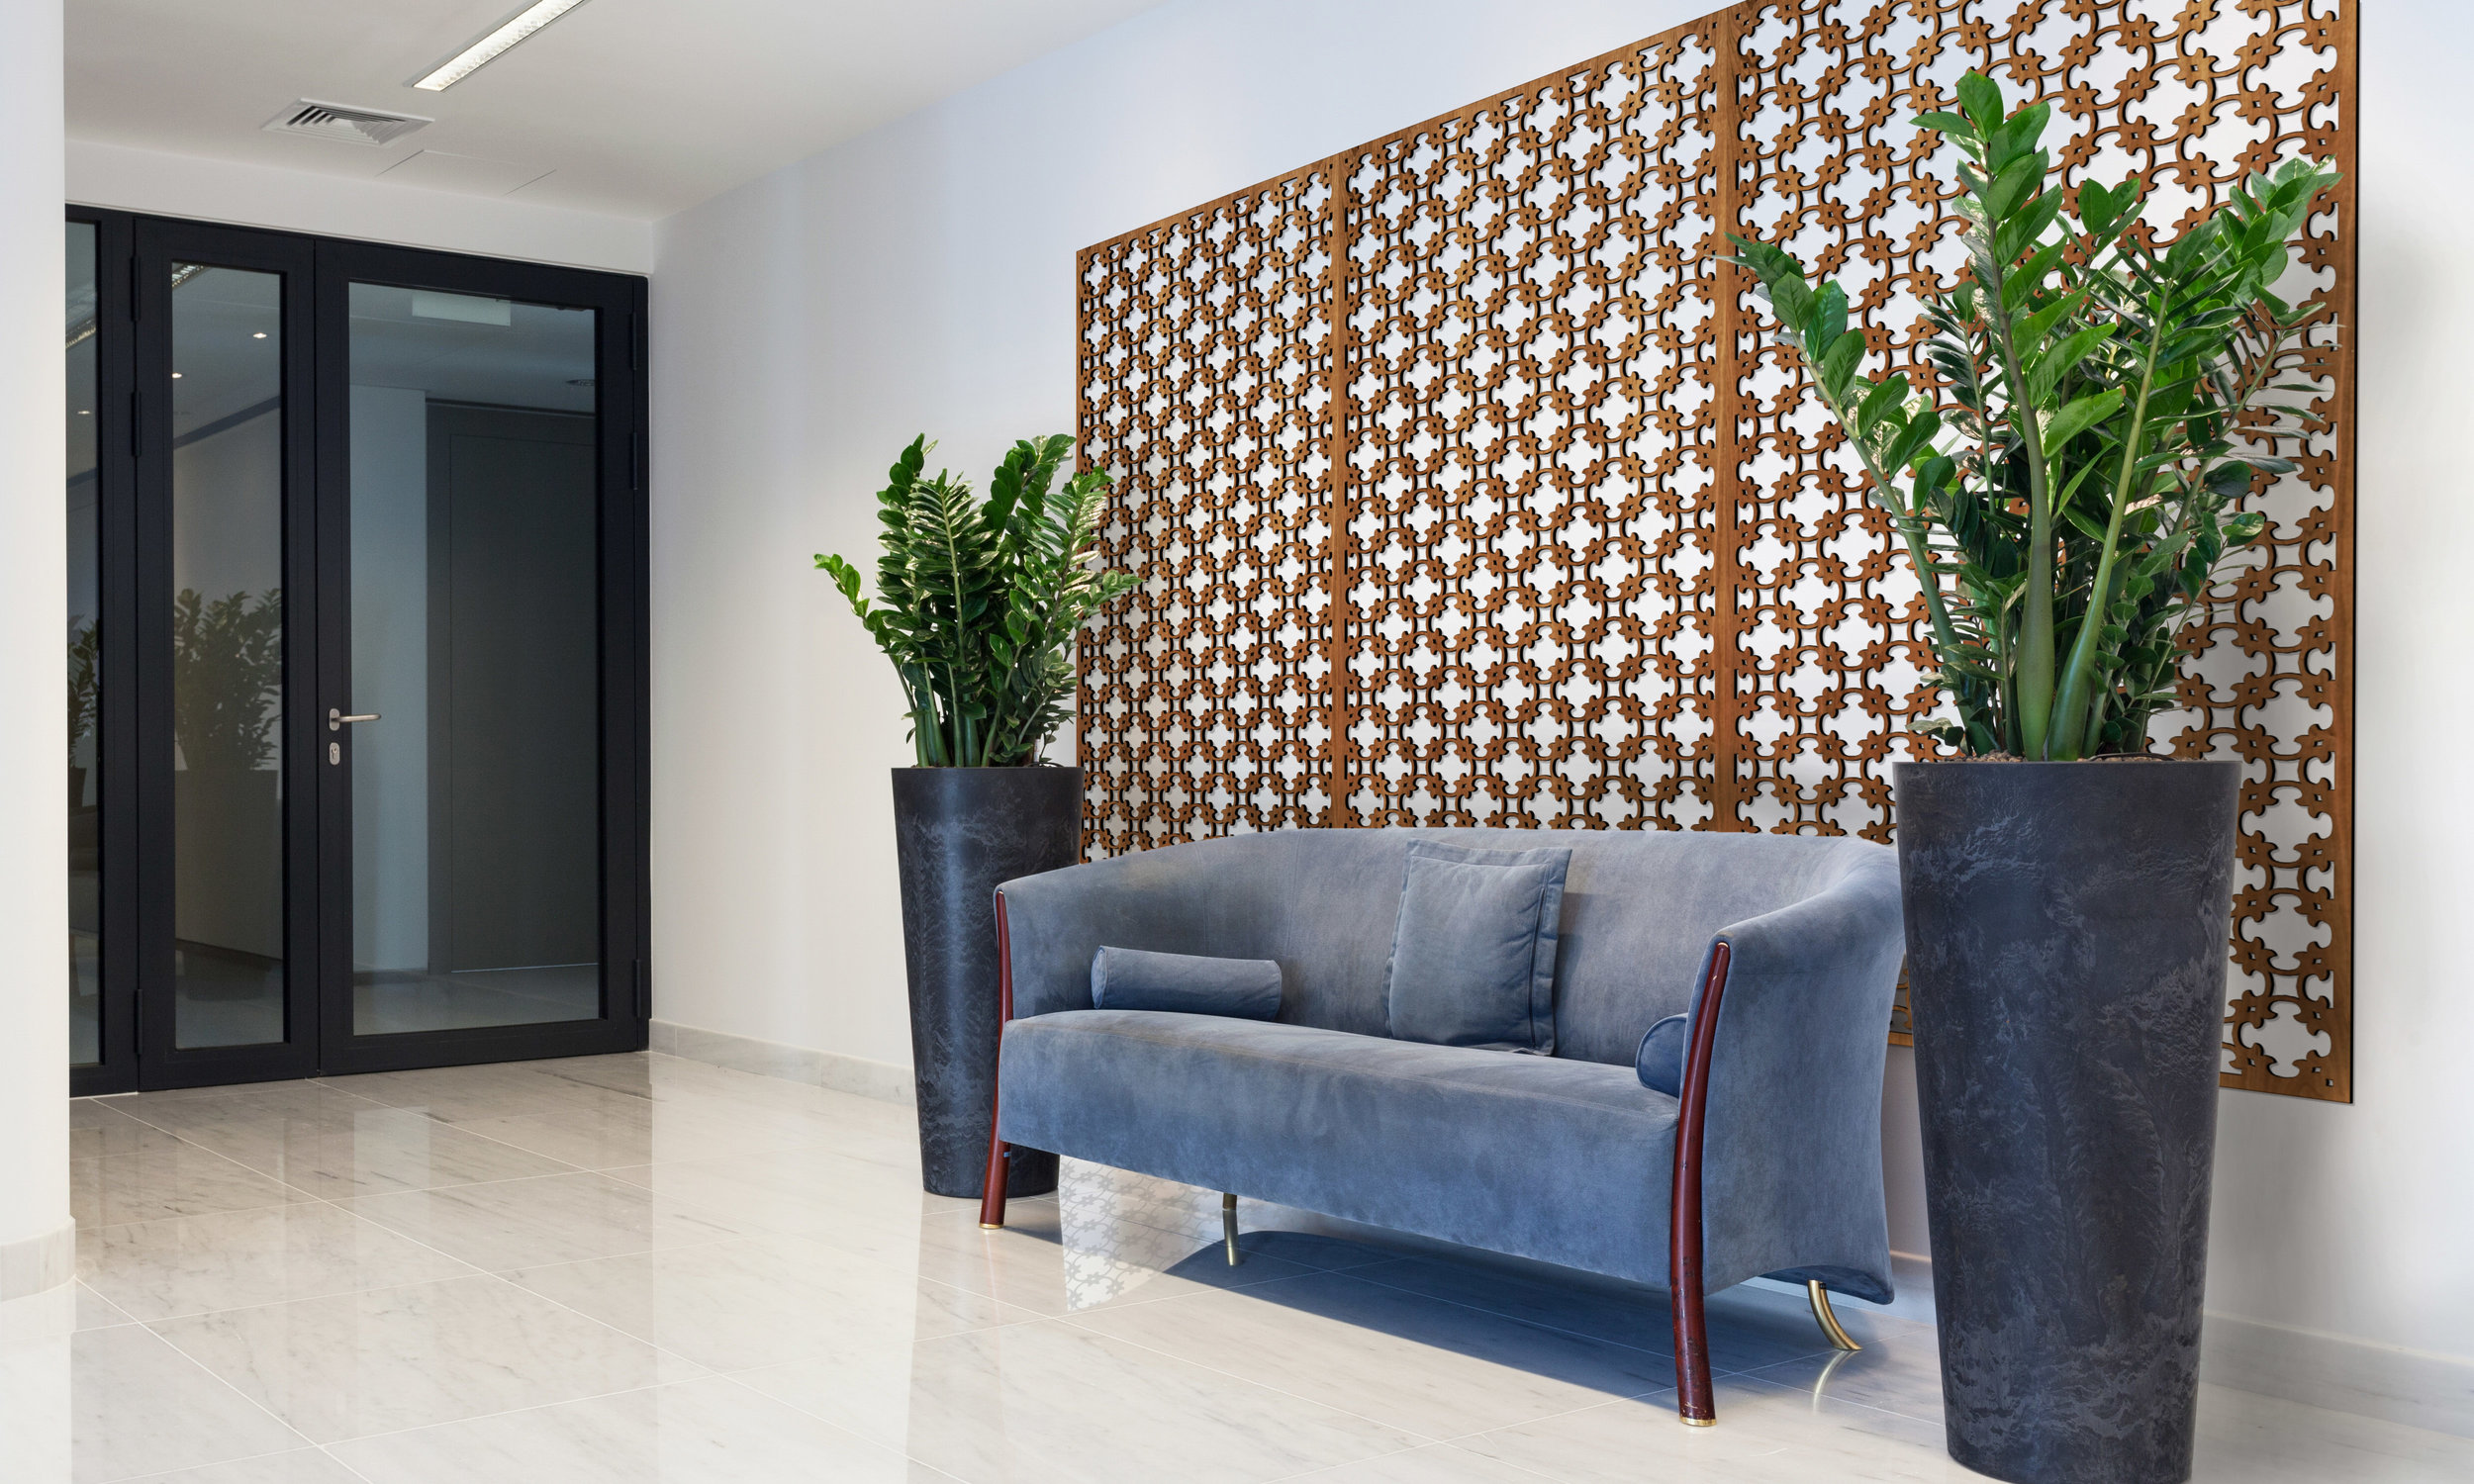 Installation Rendering A   Camphor decorative office wall panel - shown in Cherry wood